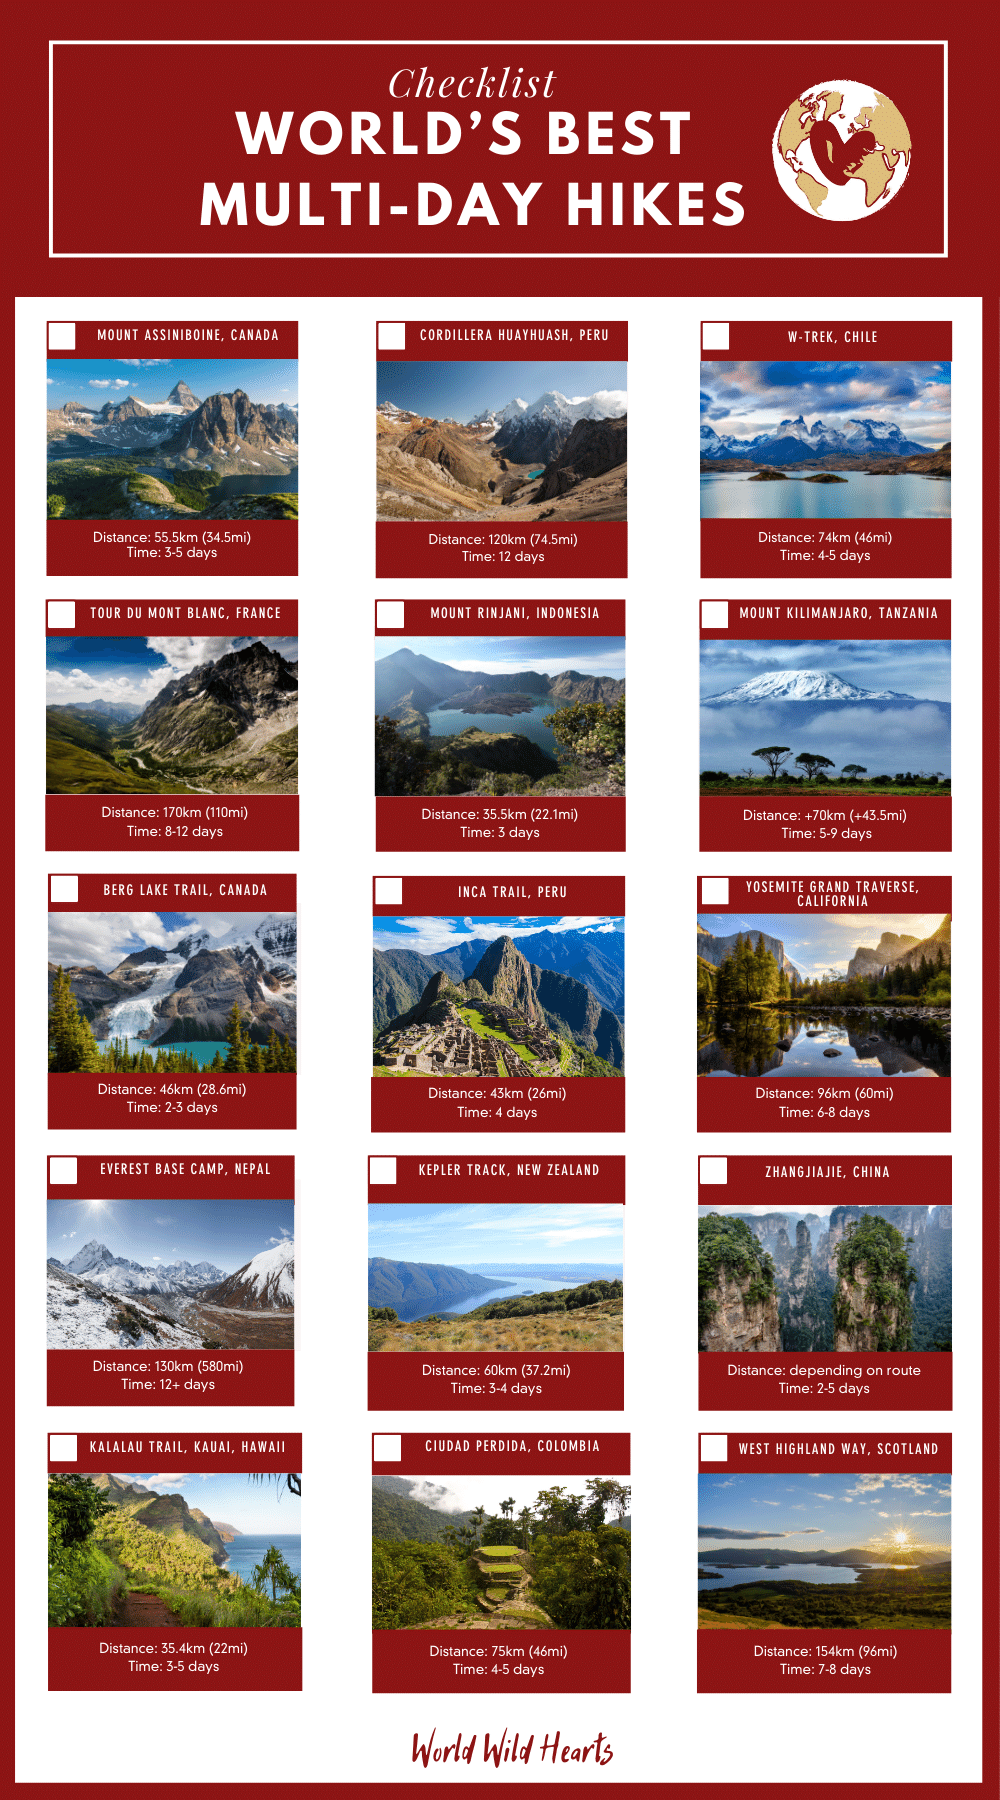 world's best multi-day hikes